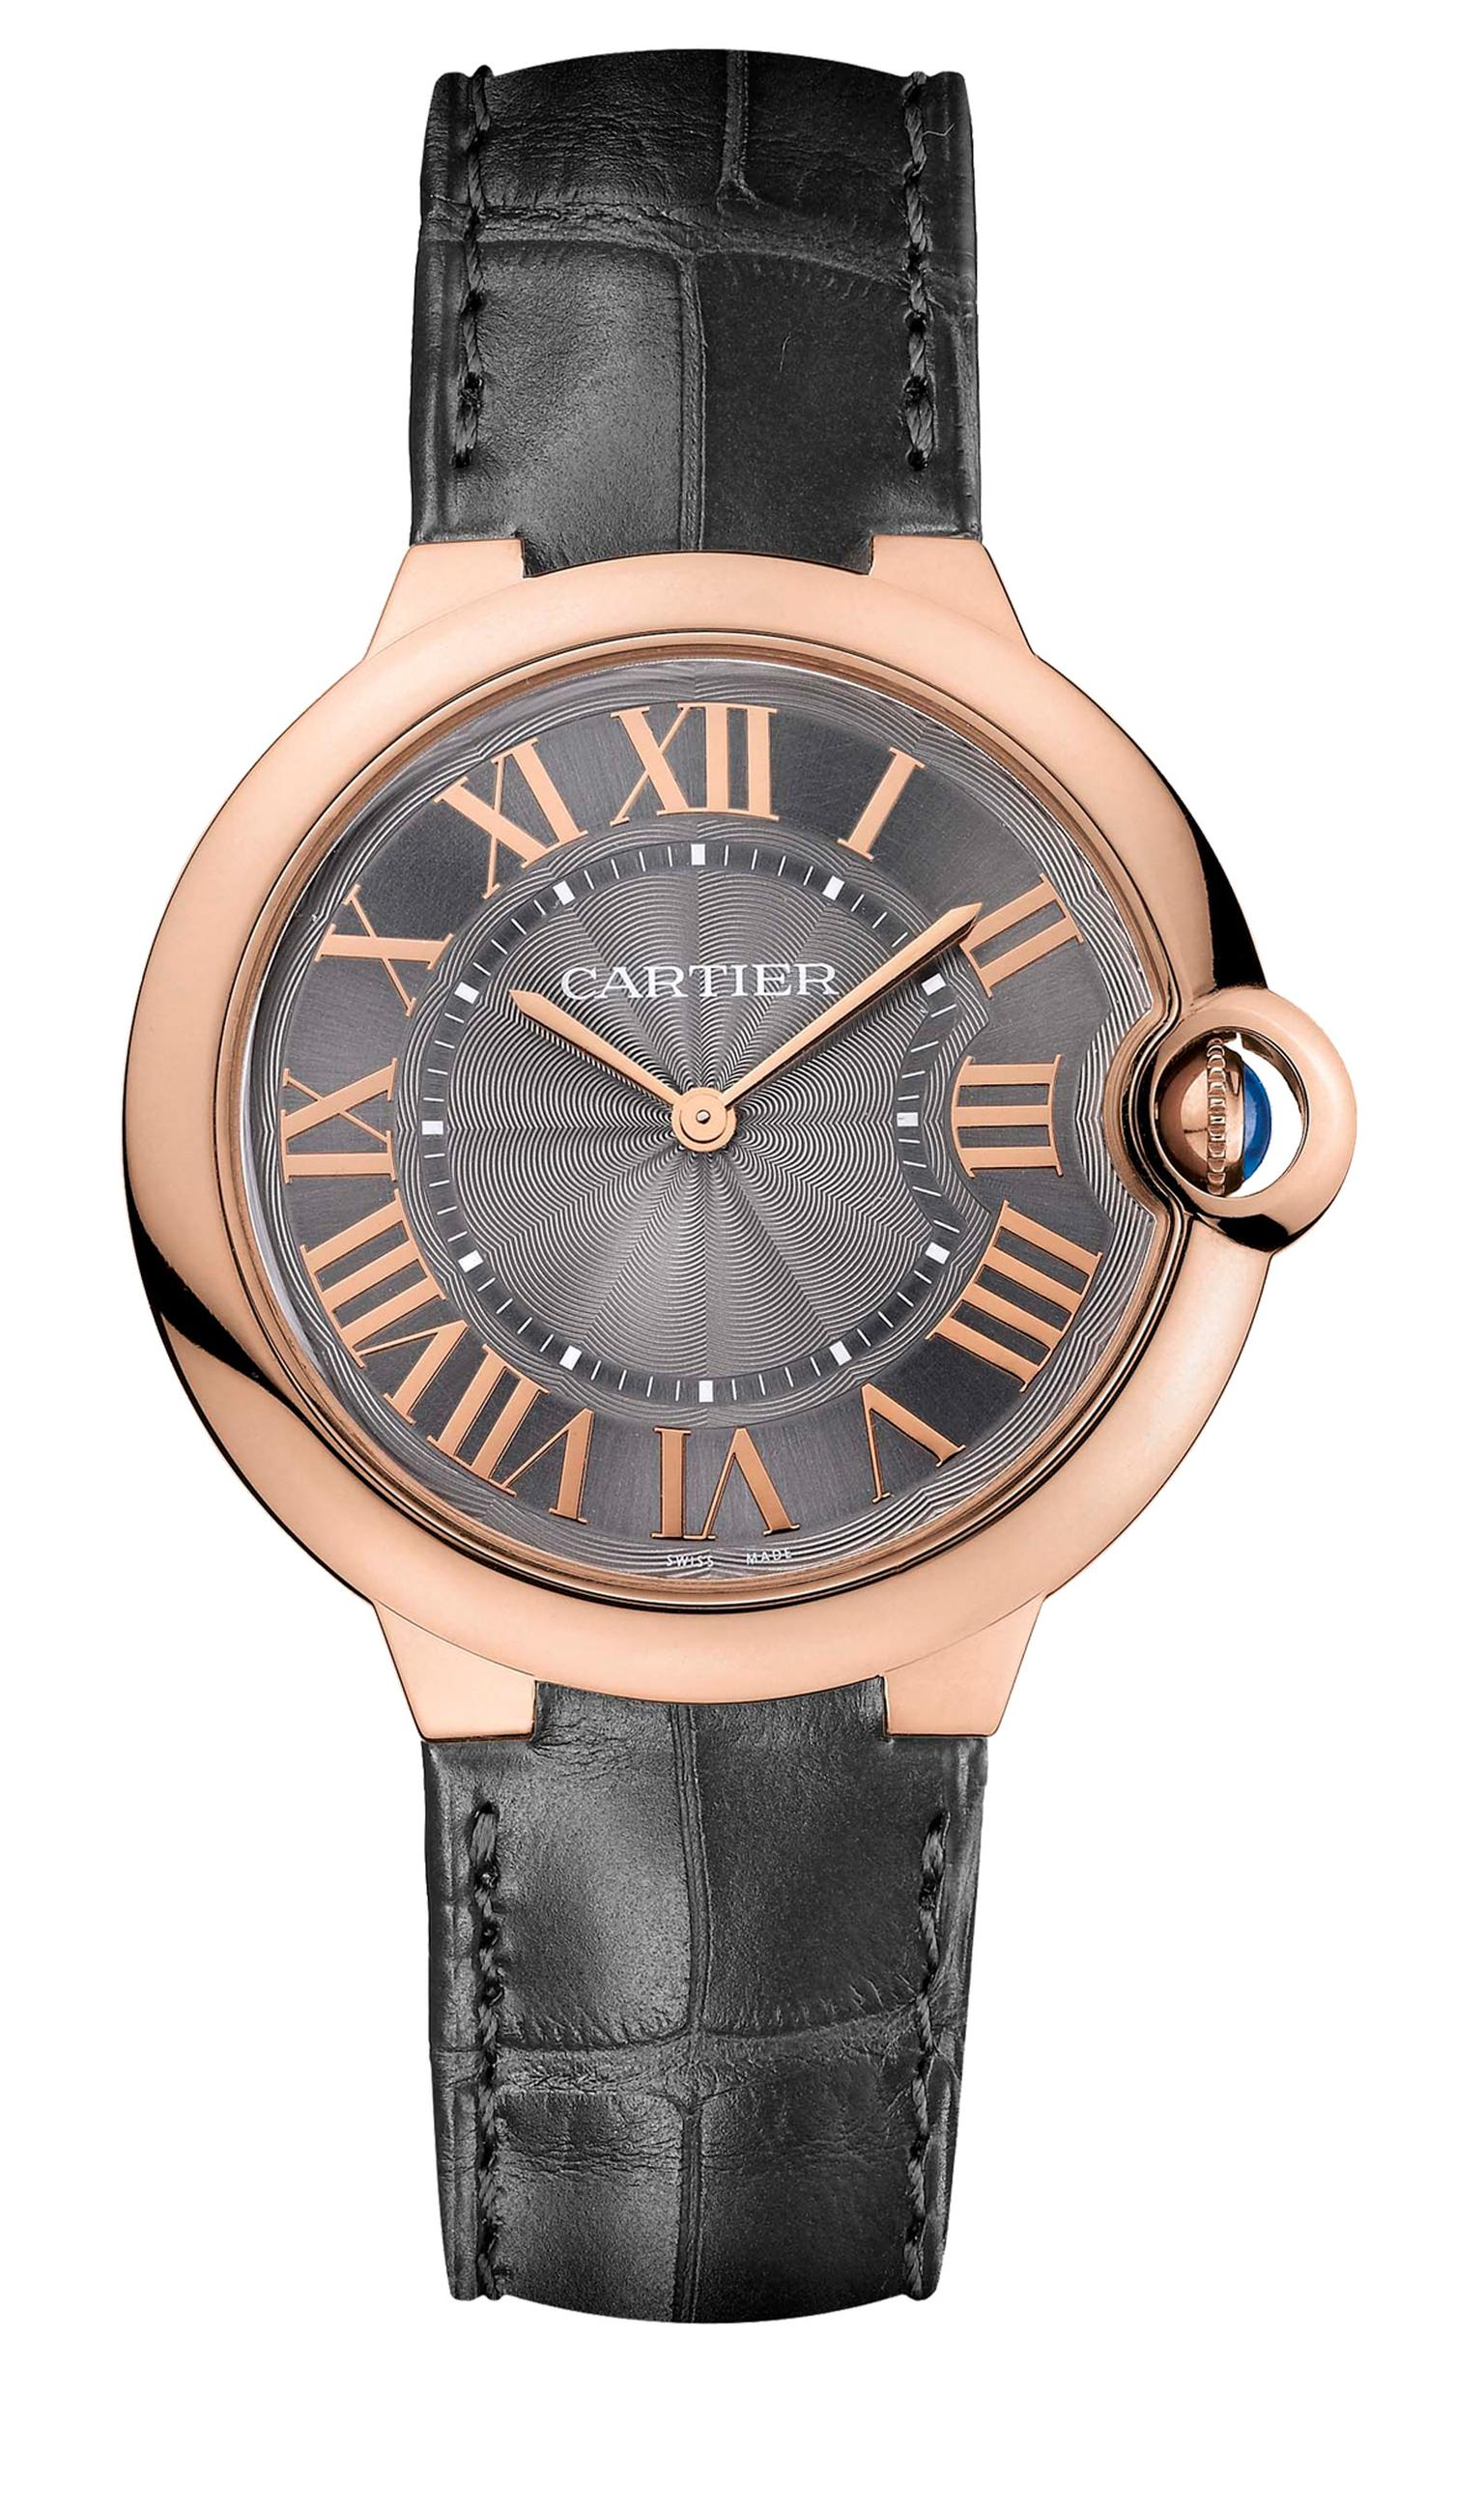 Ballon Bleu de Cartier Extra Flat watch_20140220_Zoom